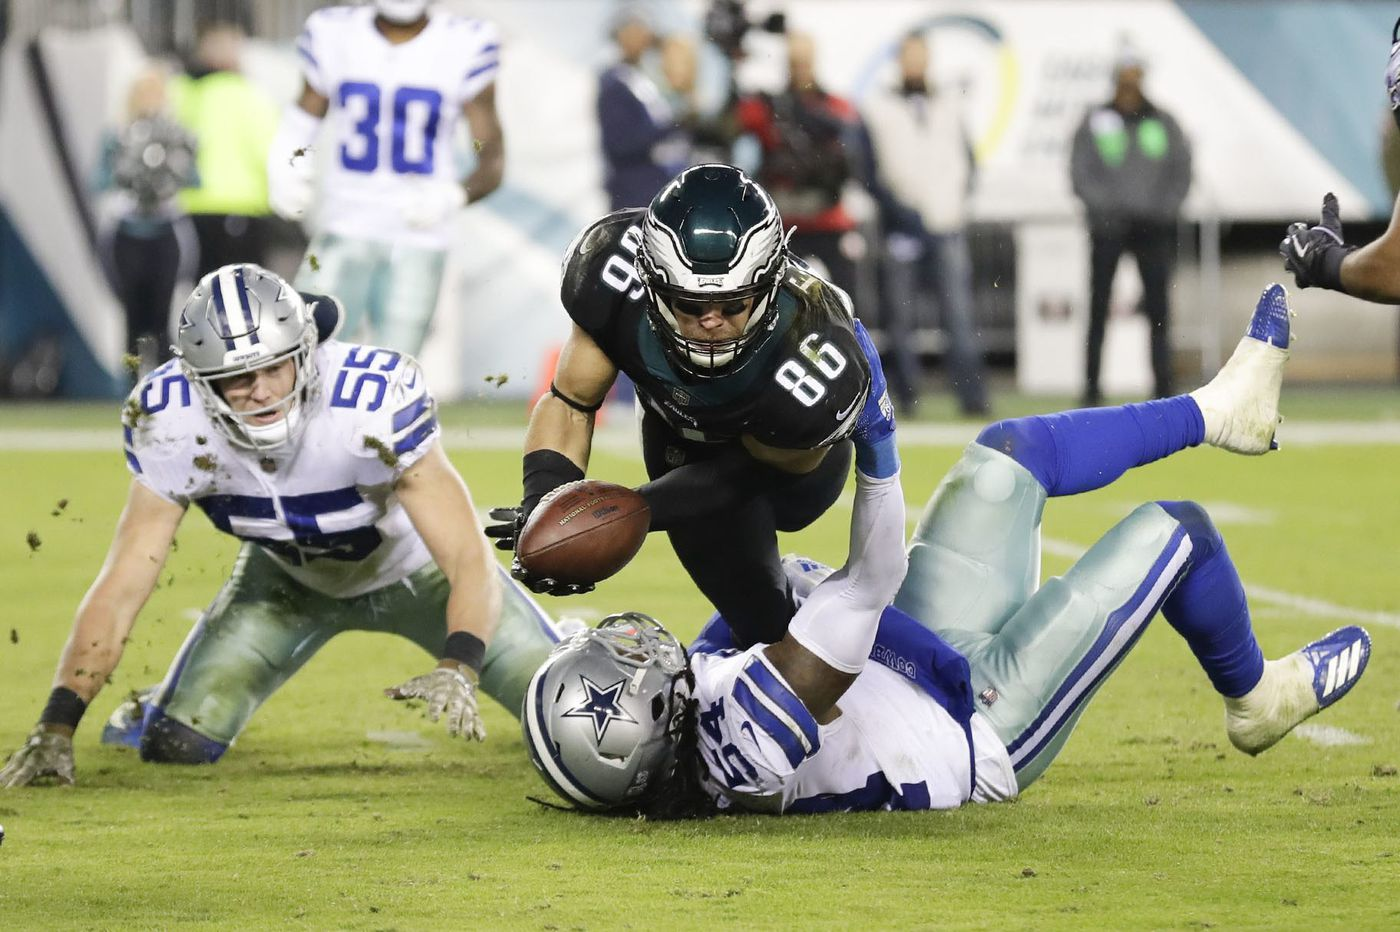 Cowboys 27, Eagles 20: Birds fall to 4-5 in an important NFC East game